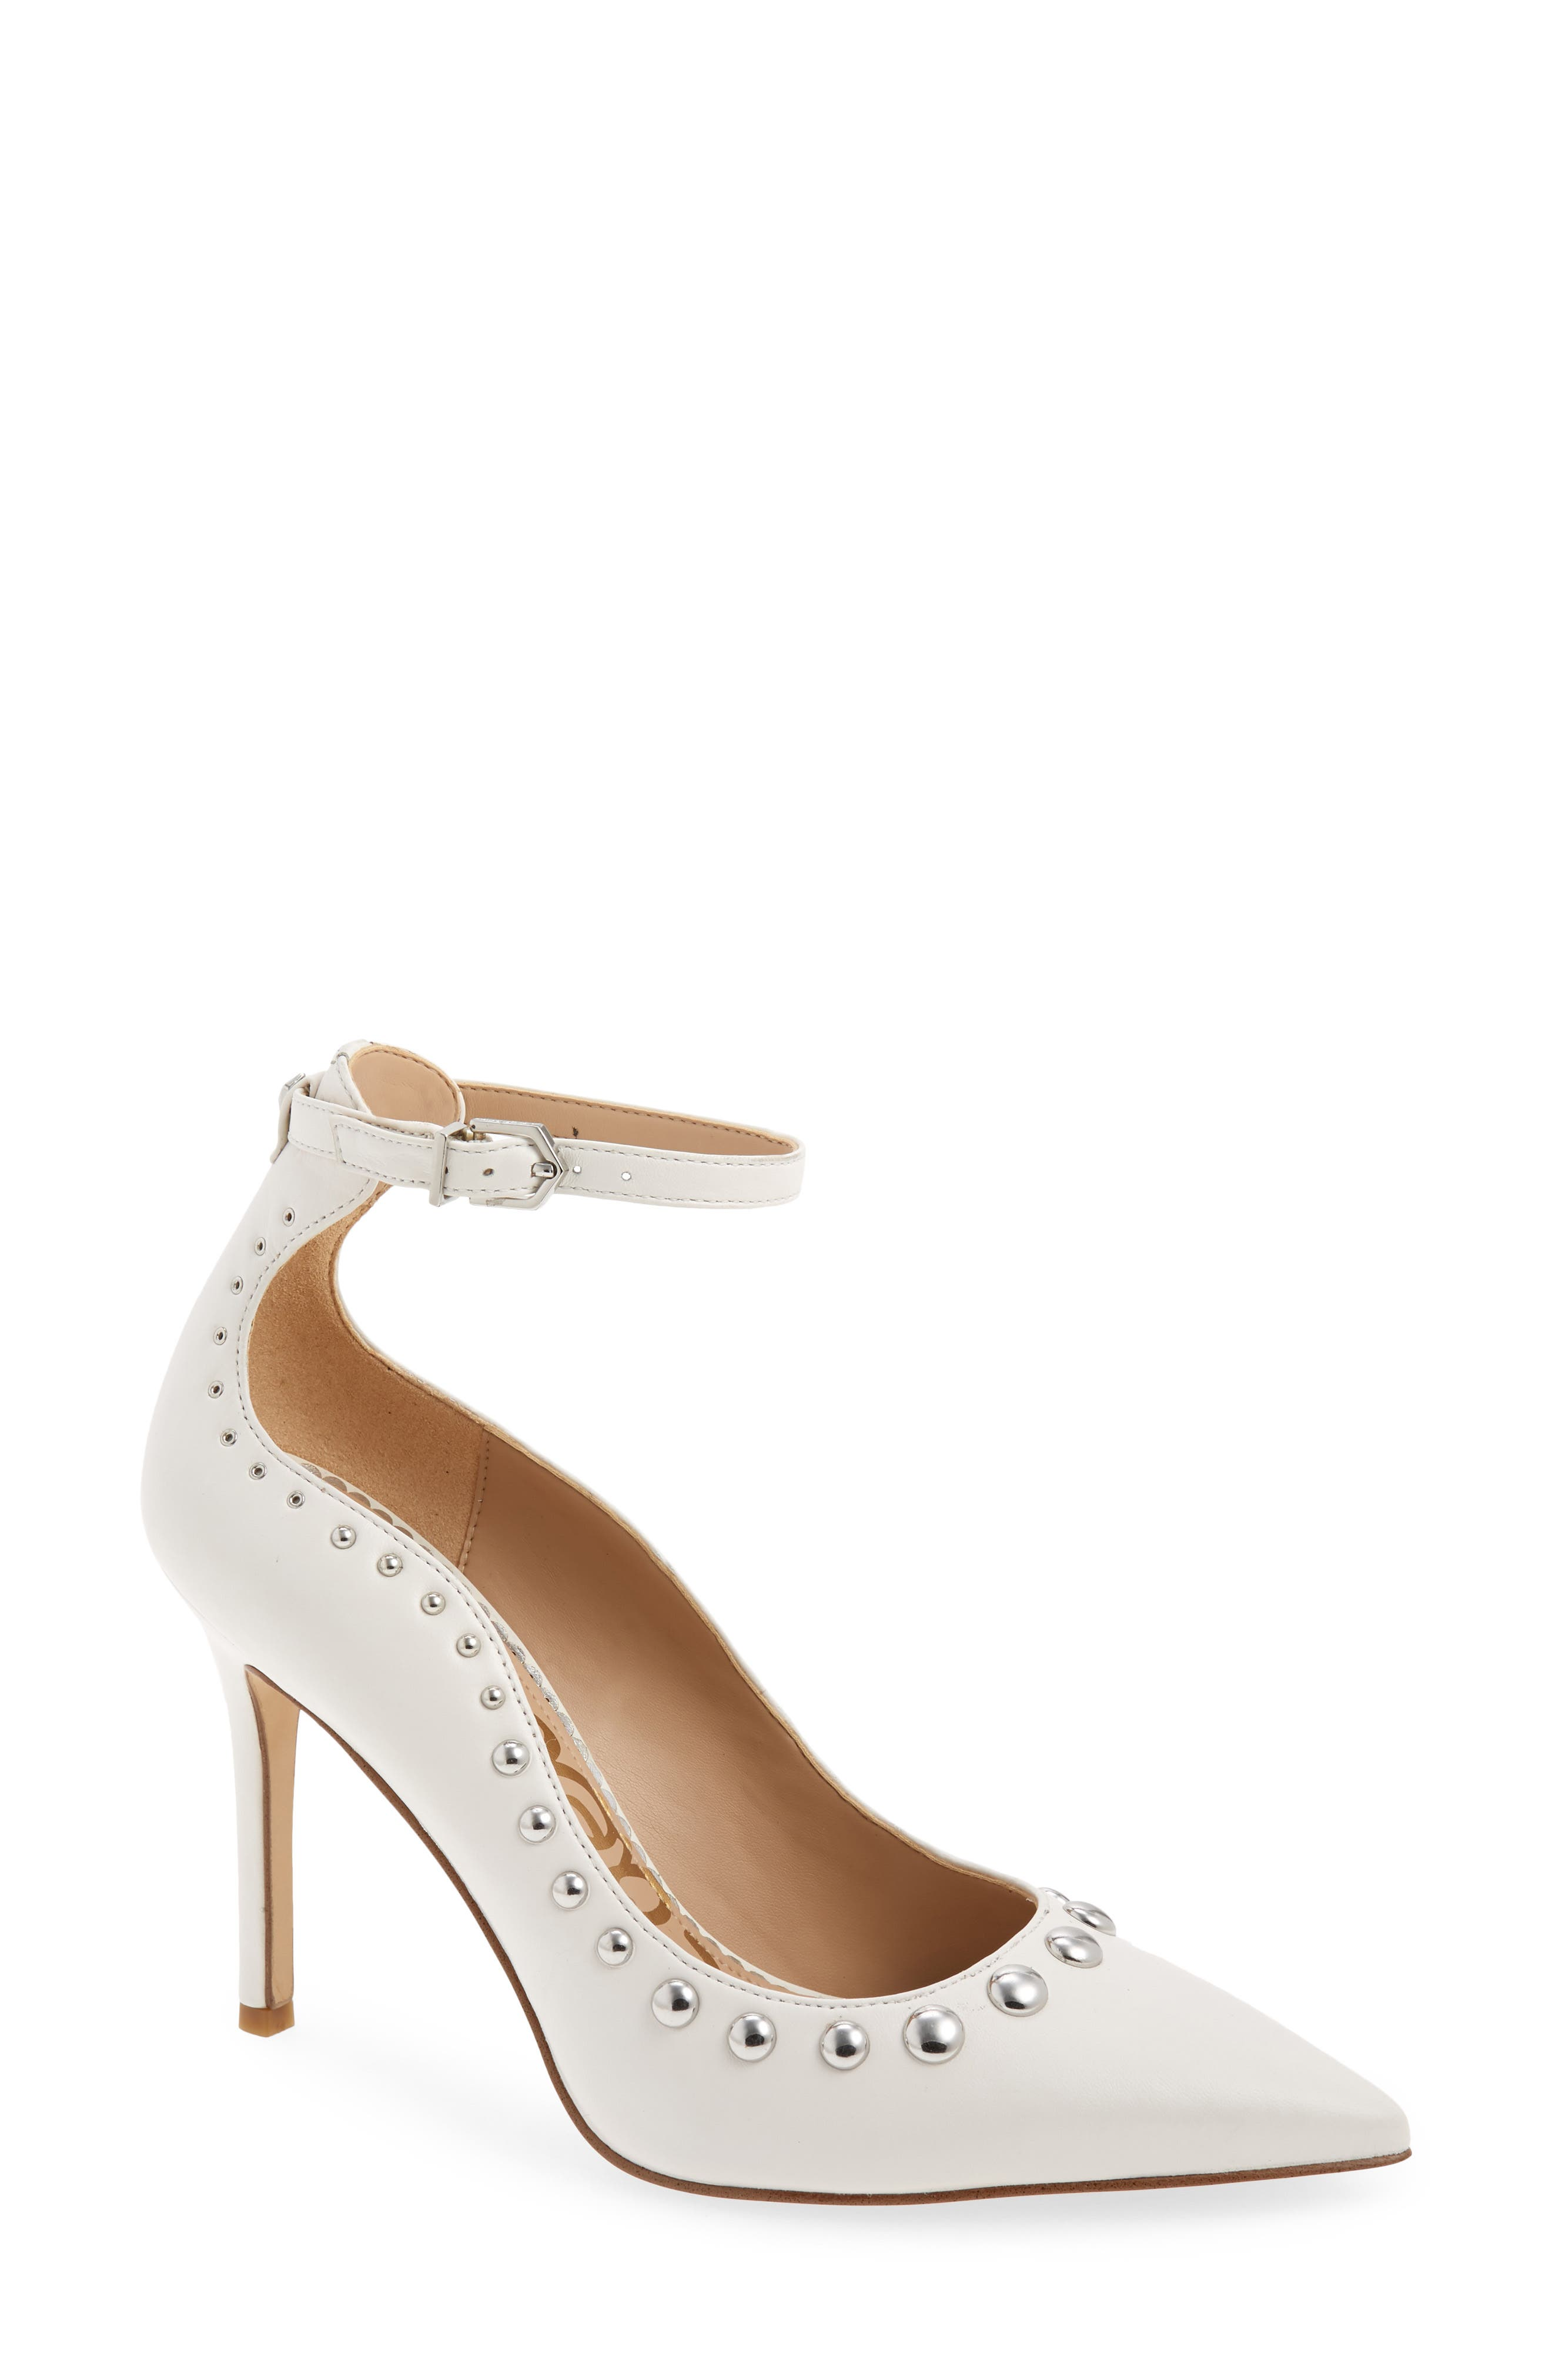 Natalie 2 Embroidered Sequined Pumps t8UtxtXbk